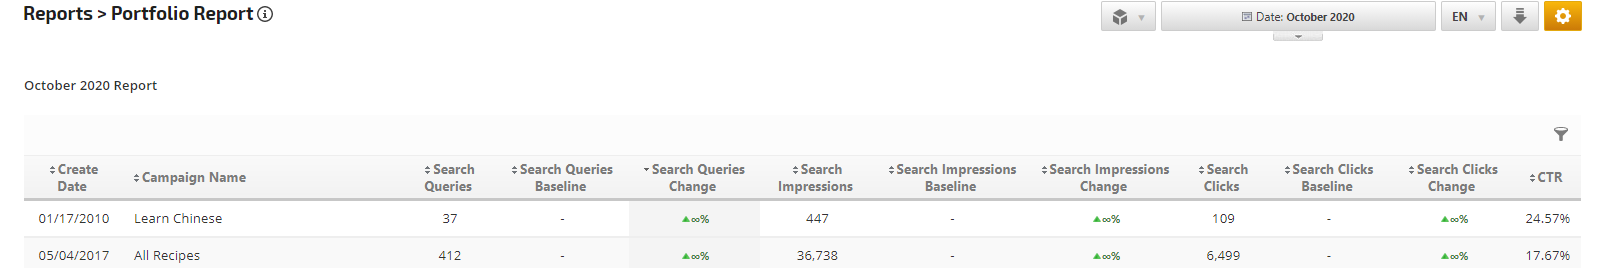 Portfolio Report Search Console (Webmaster Tools) Queries, Impressions, and Clicks